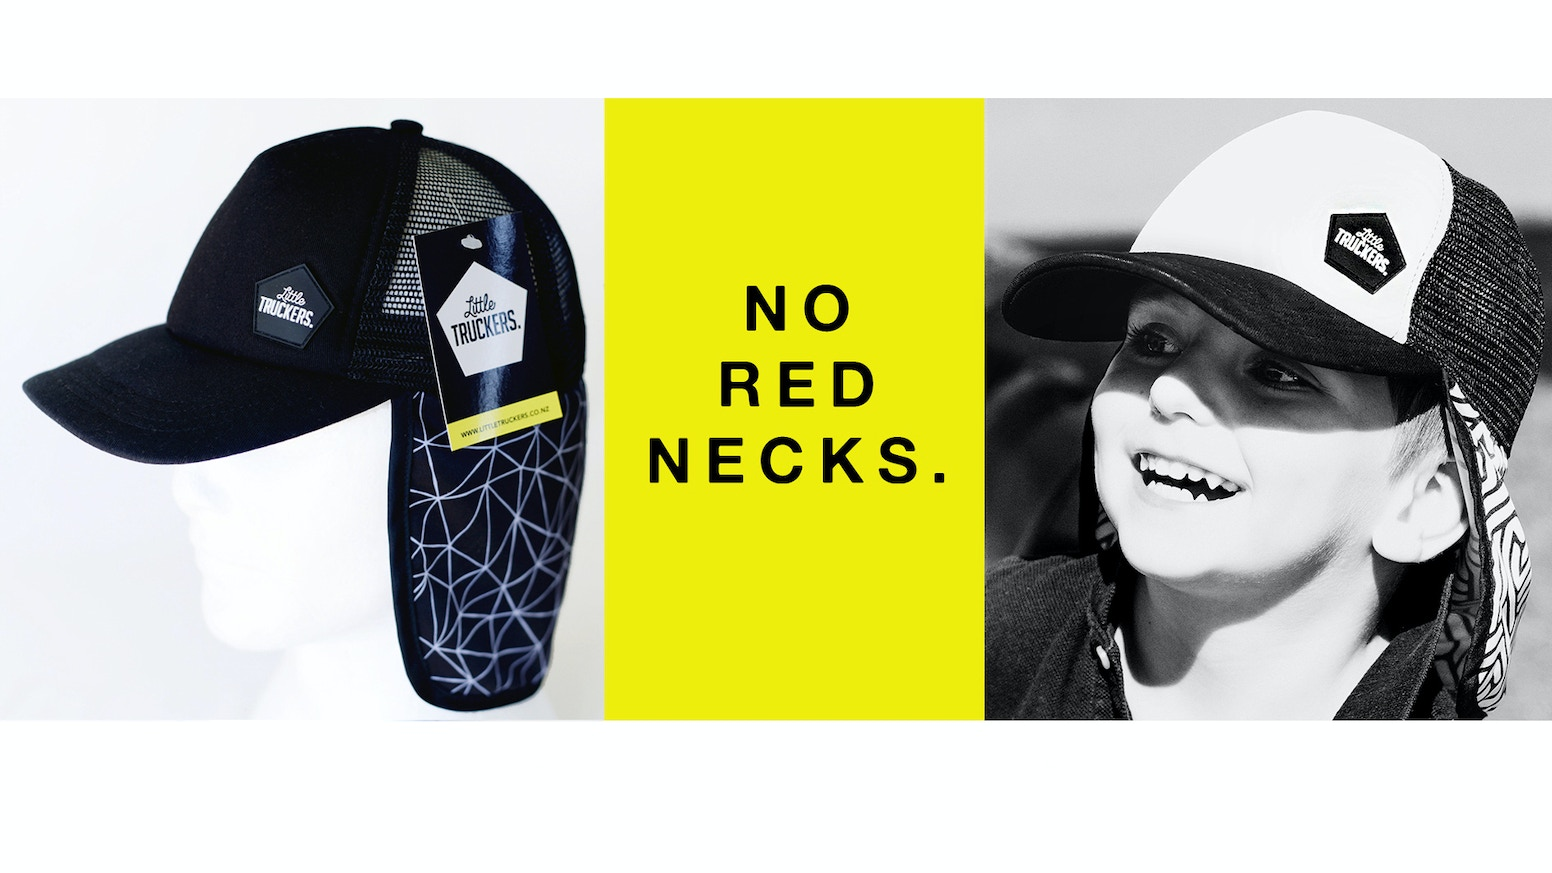 b9bf20f7089dc Kids trucker caps with flaps. Protect little ears   necks with Little  Truckers. Designed with neck ear flap